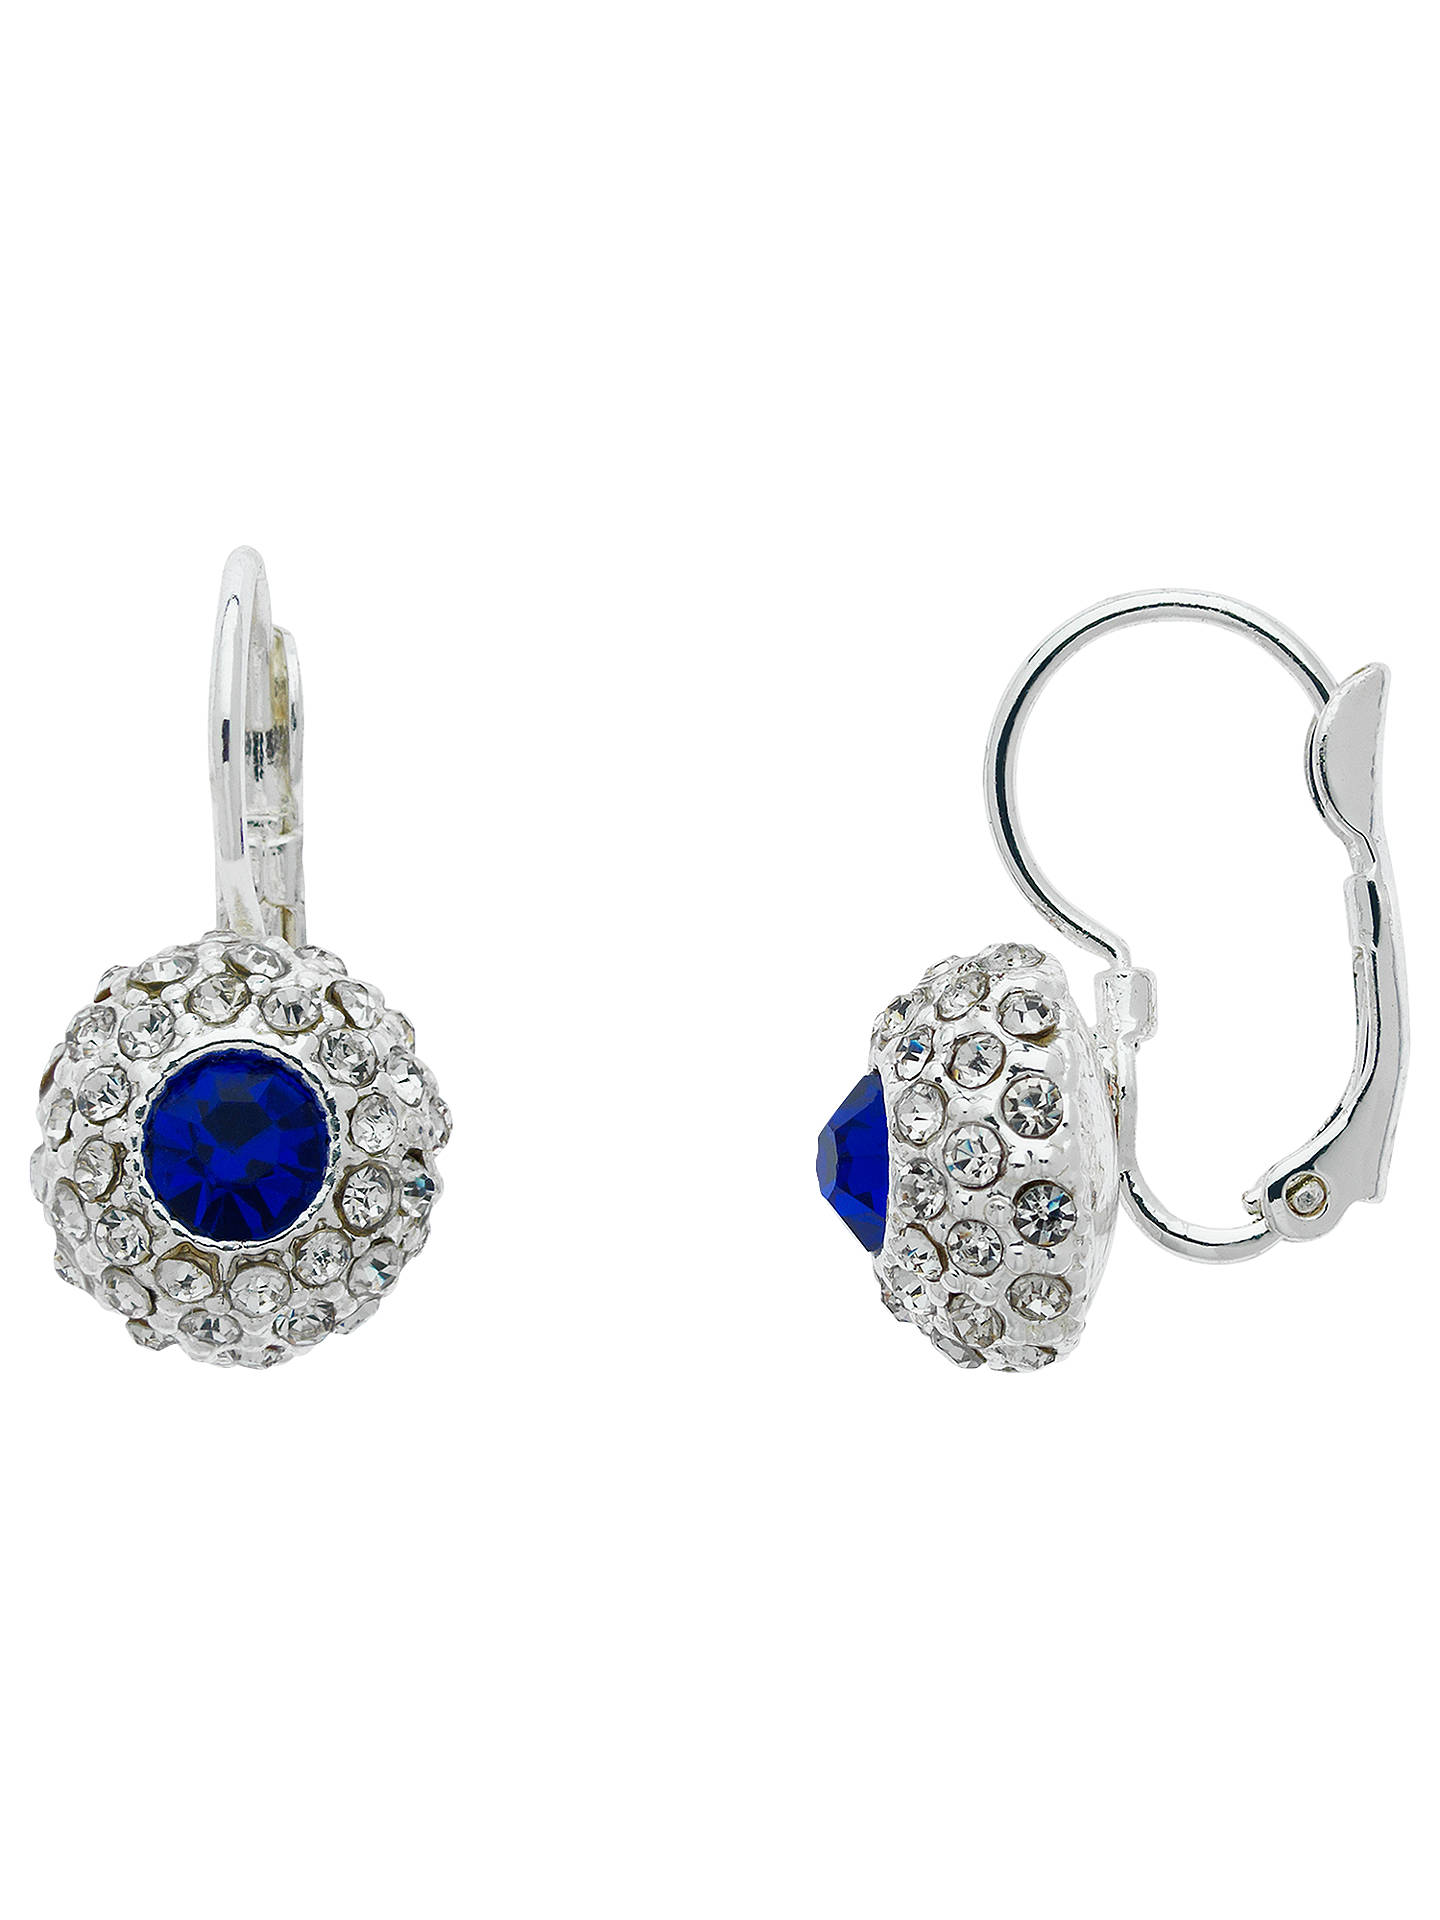 BuyMonet Pave Glass Crystal Leverback Drop Earrings, Silver/Blue Online at johnlewis.com